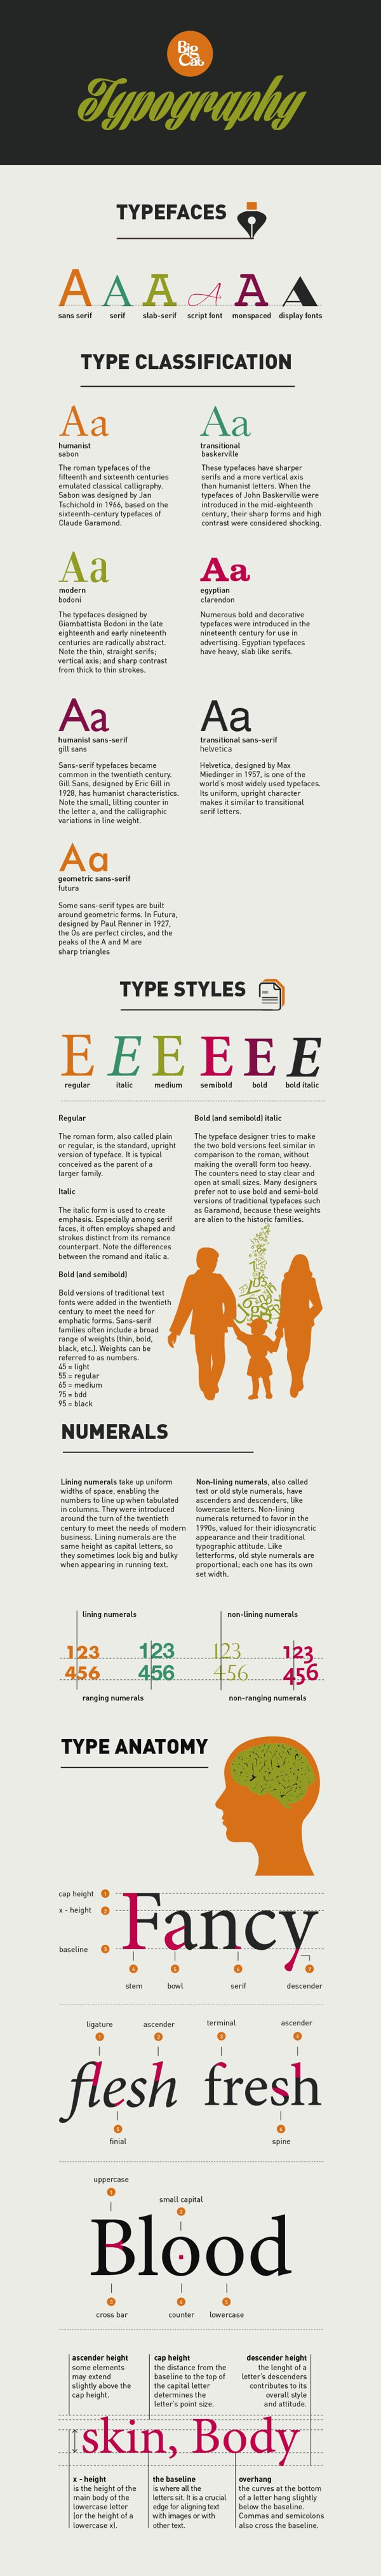 Typography, infographic design by Maurice ten Teye.